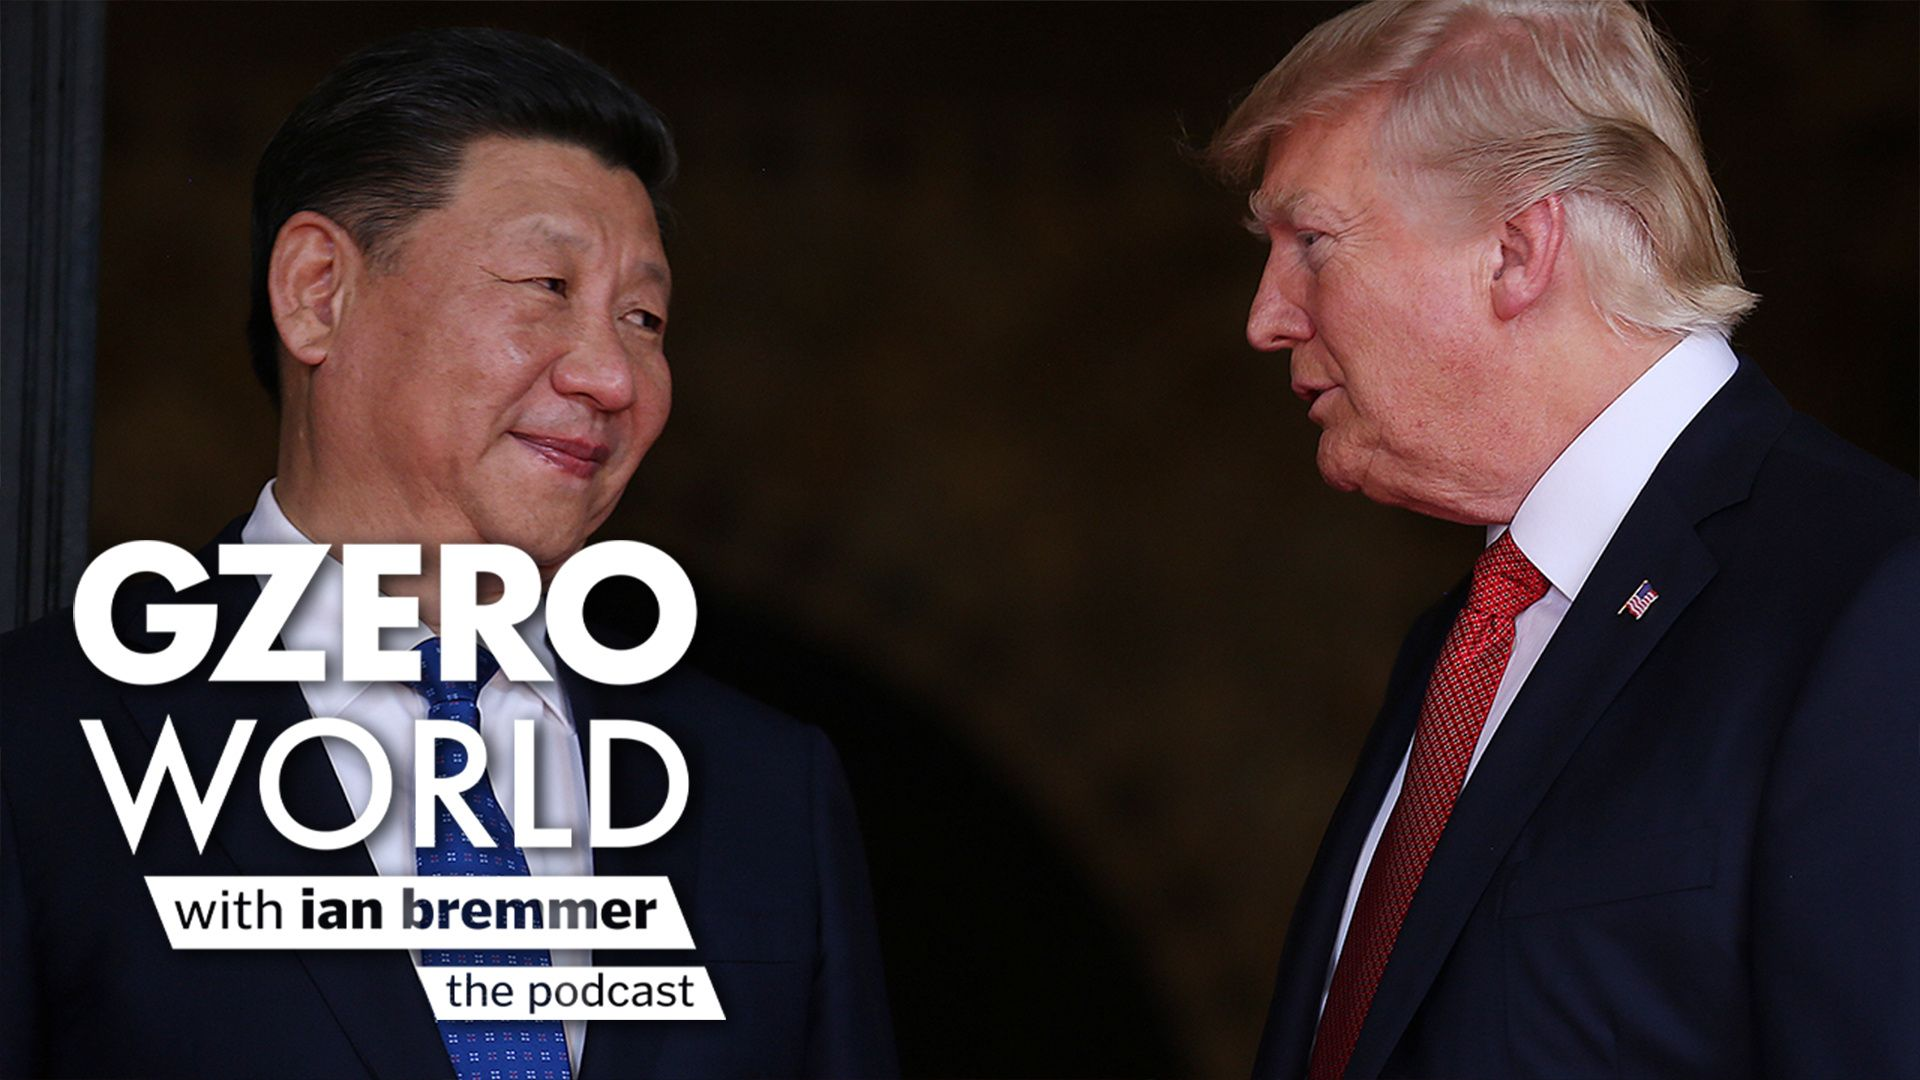 Podcast: From Bad to Worse: US/China Relations with Zanny Minton Beddoes